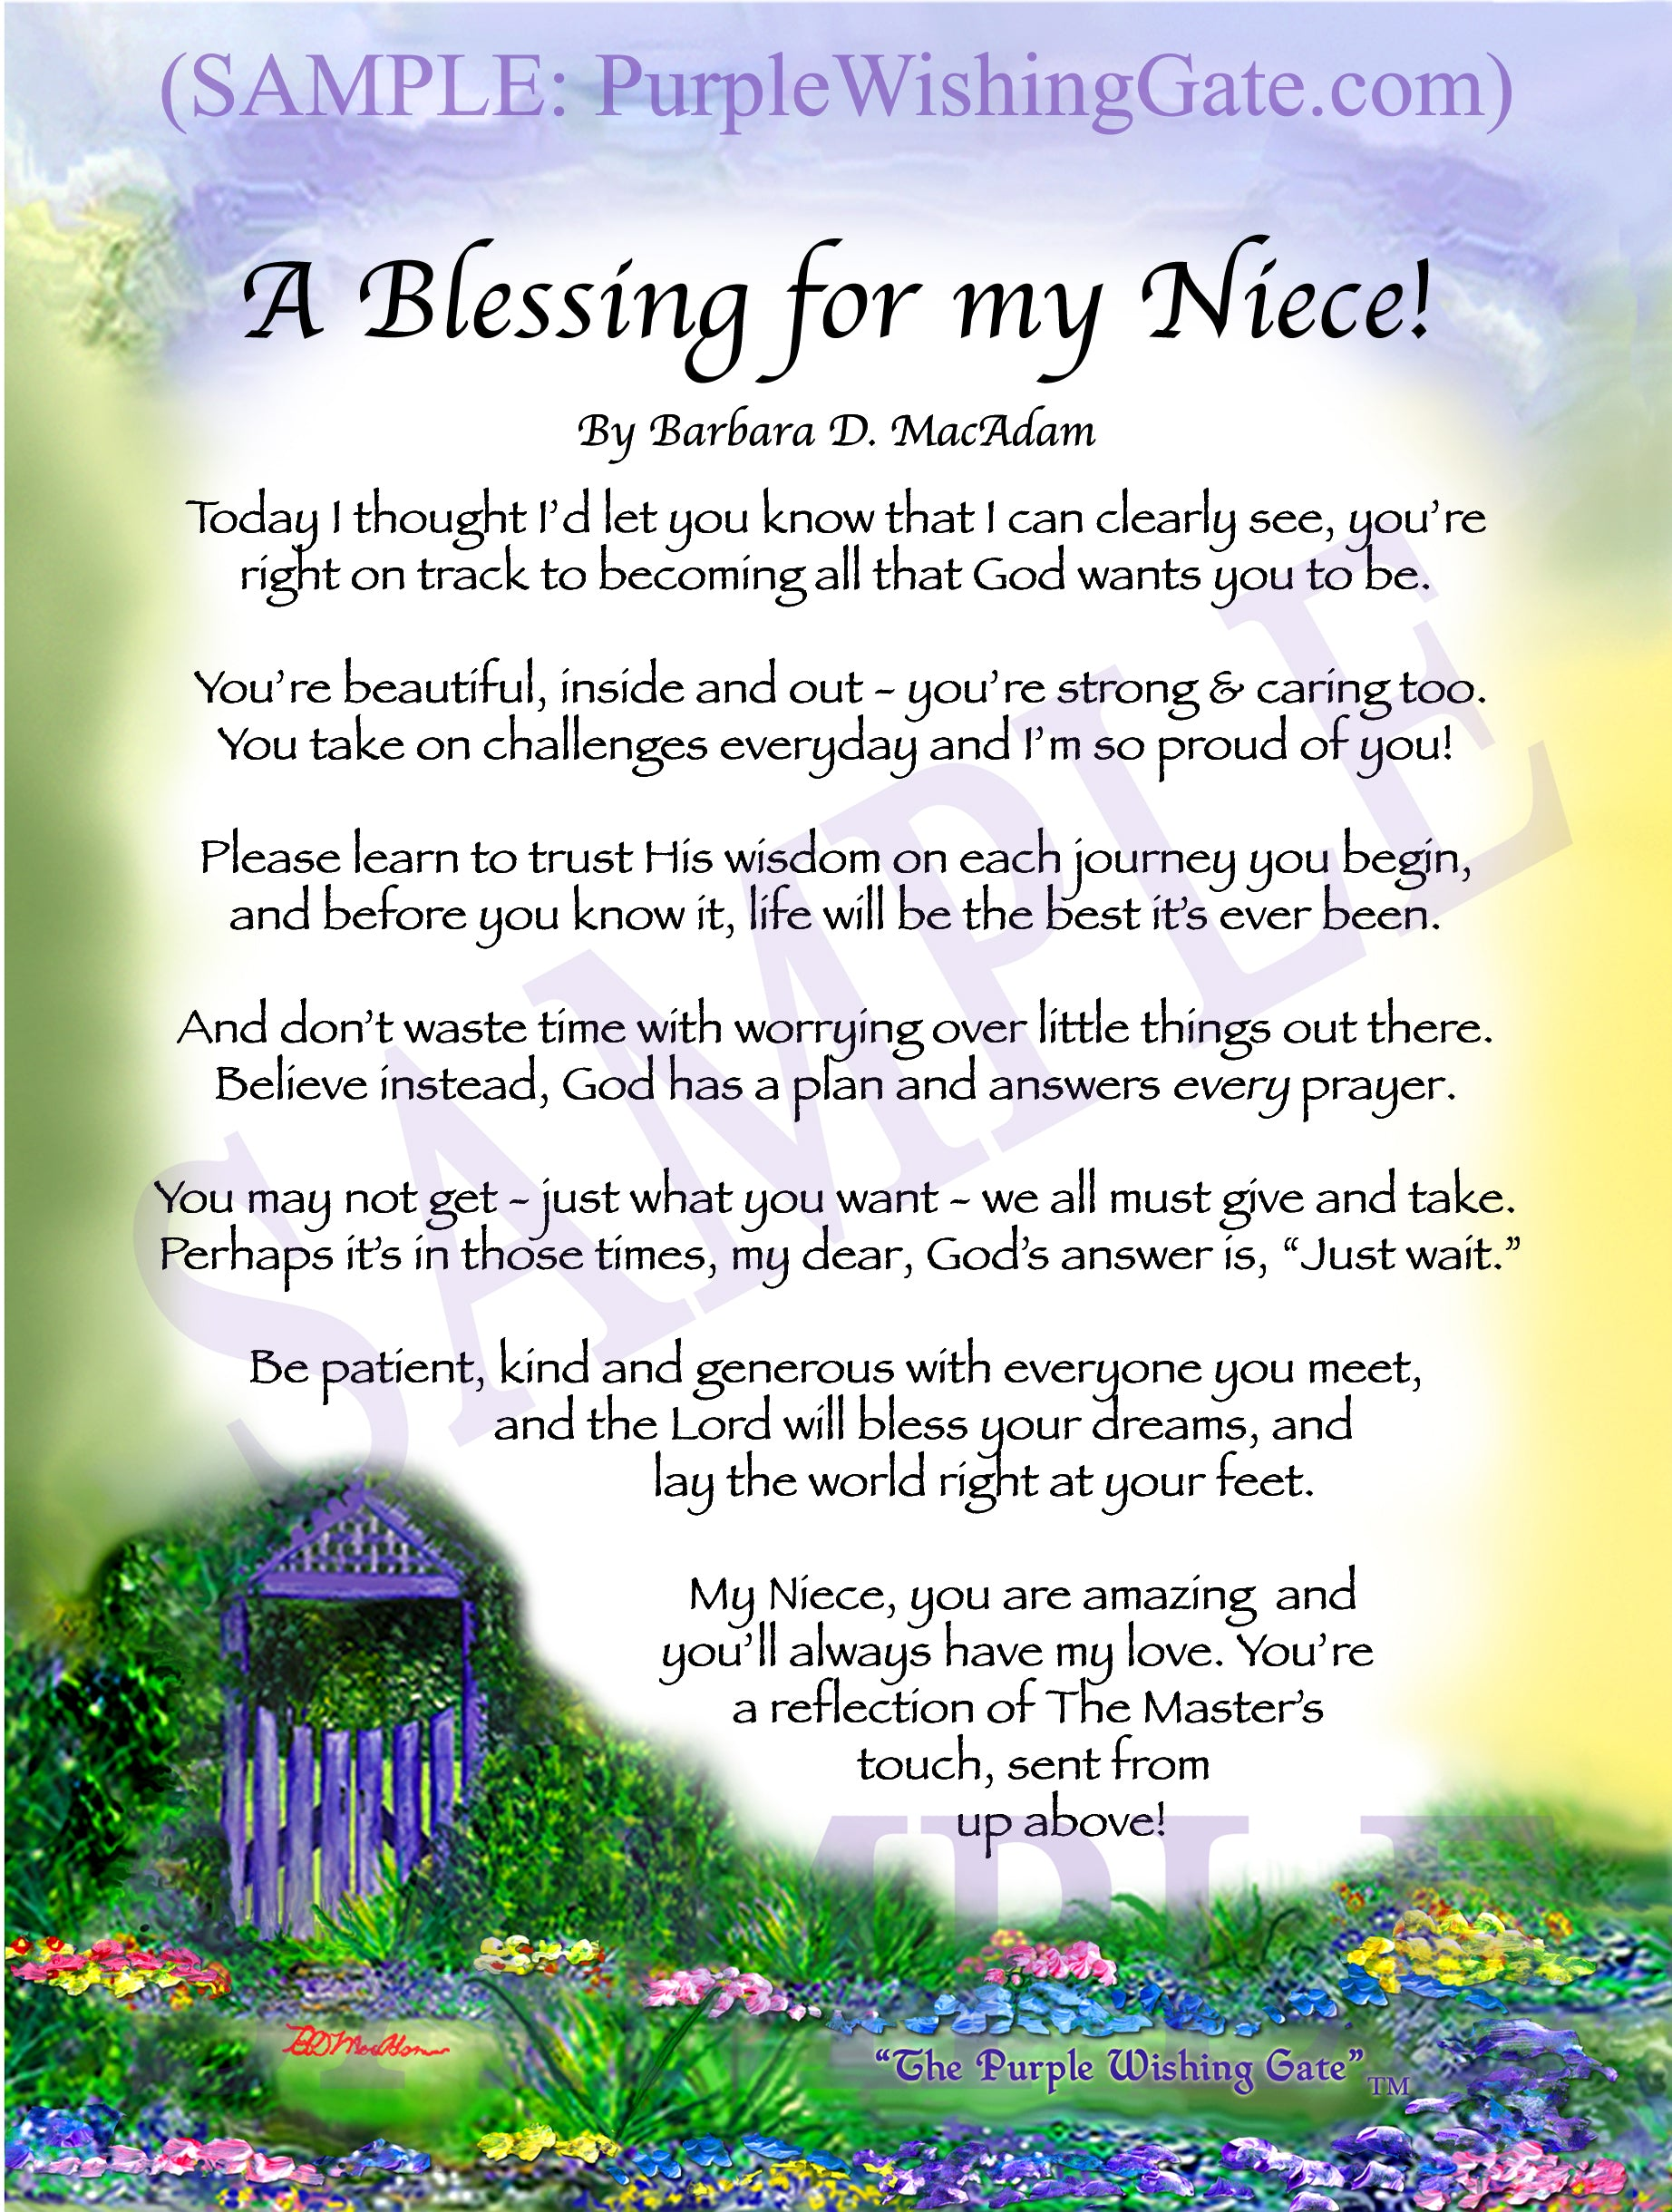 A Blessing for my Niece! (child-adult) - Gifts for Niece - PurpleWishingGate.com